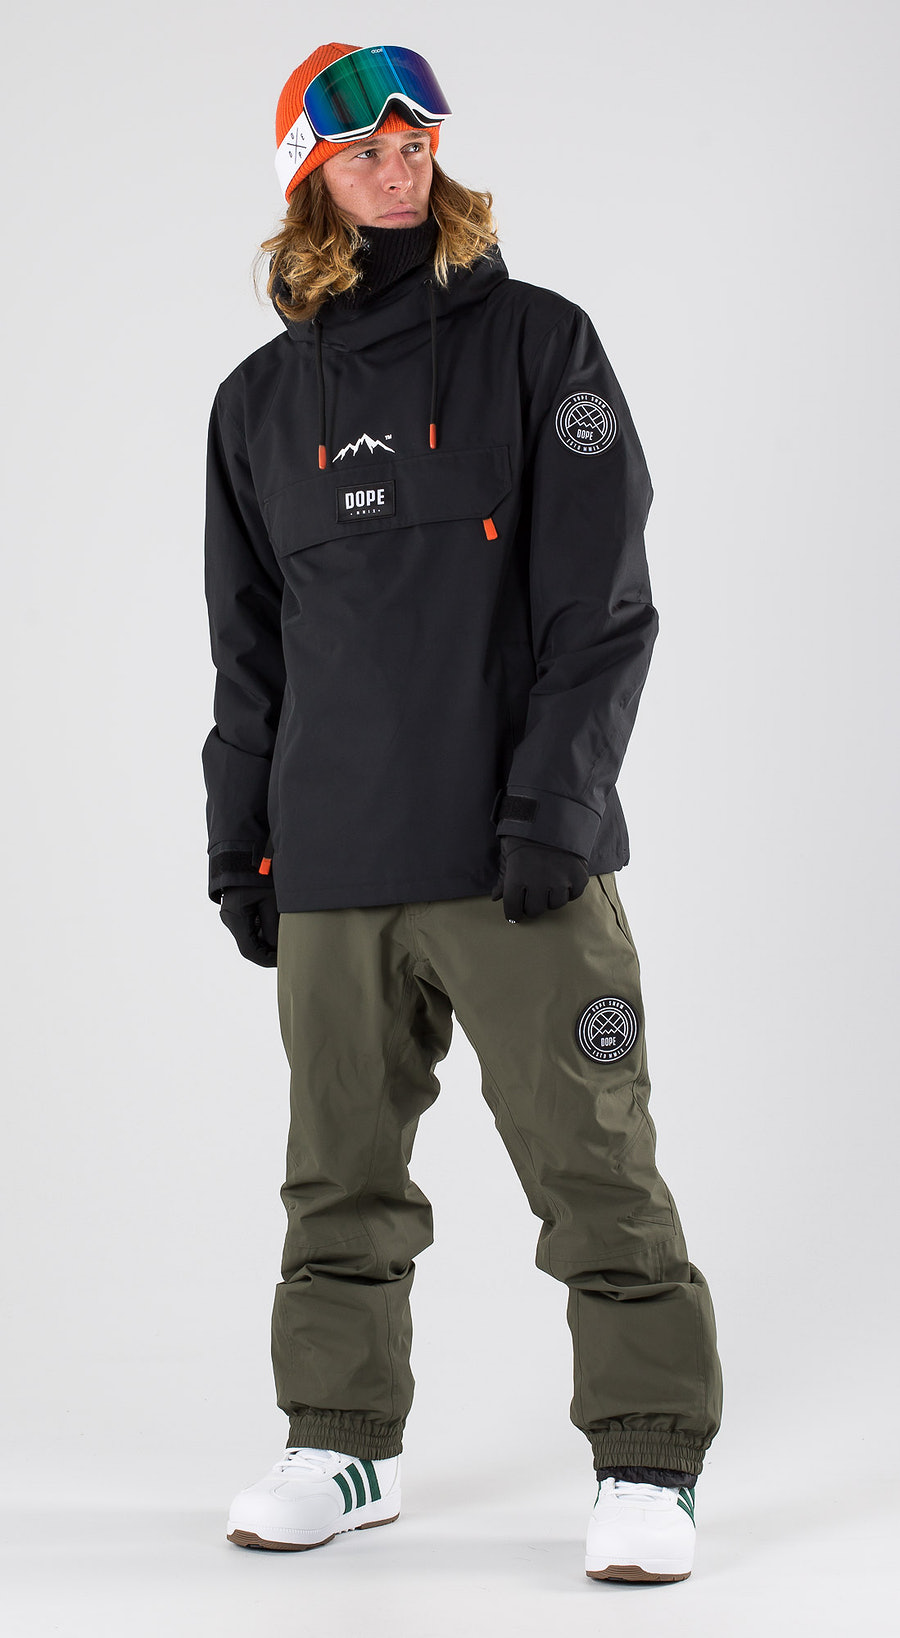 Dope Blizzard Black Snowboard clothing Multi